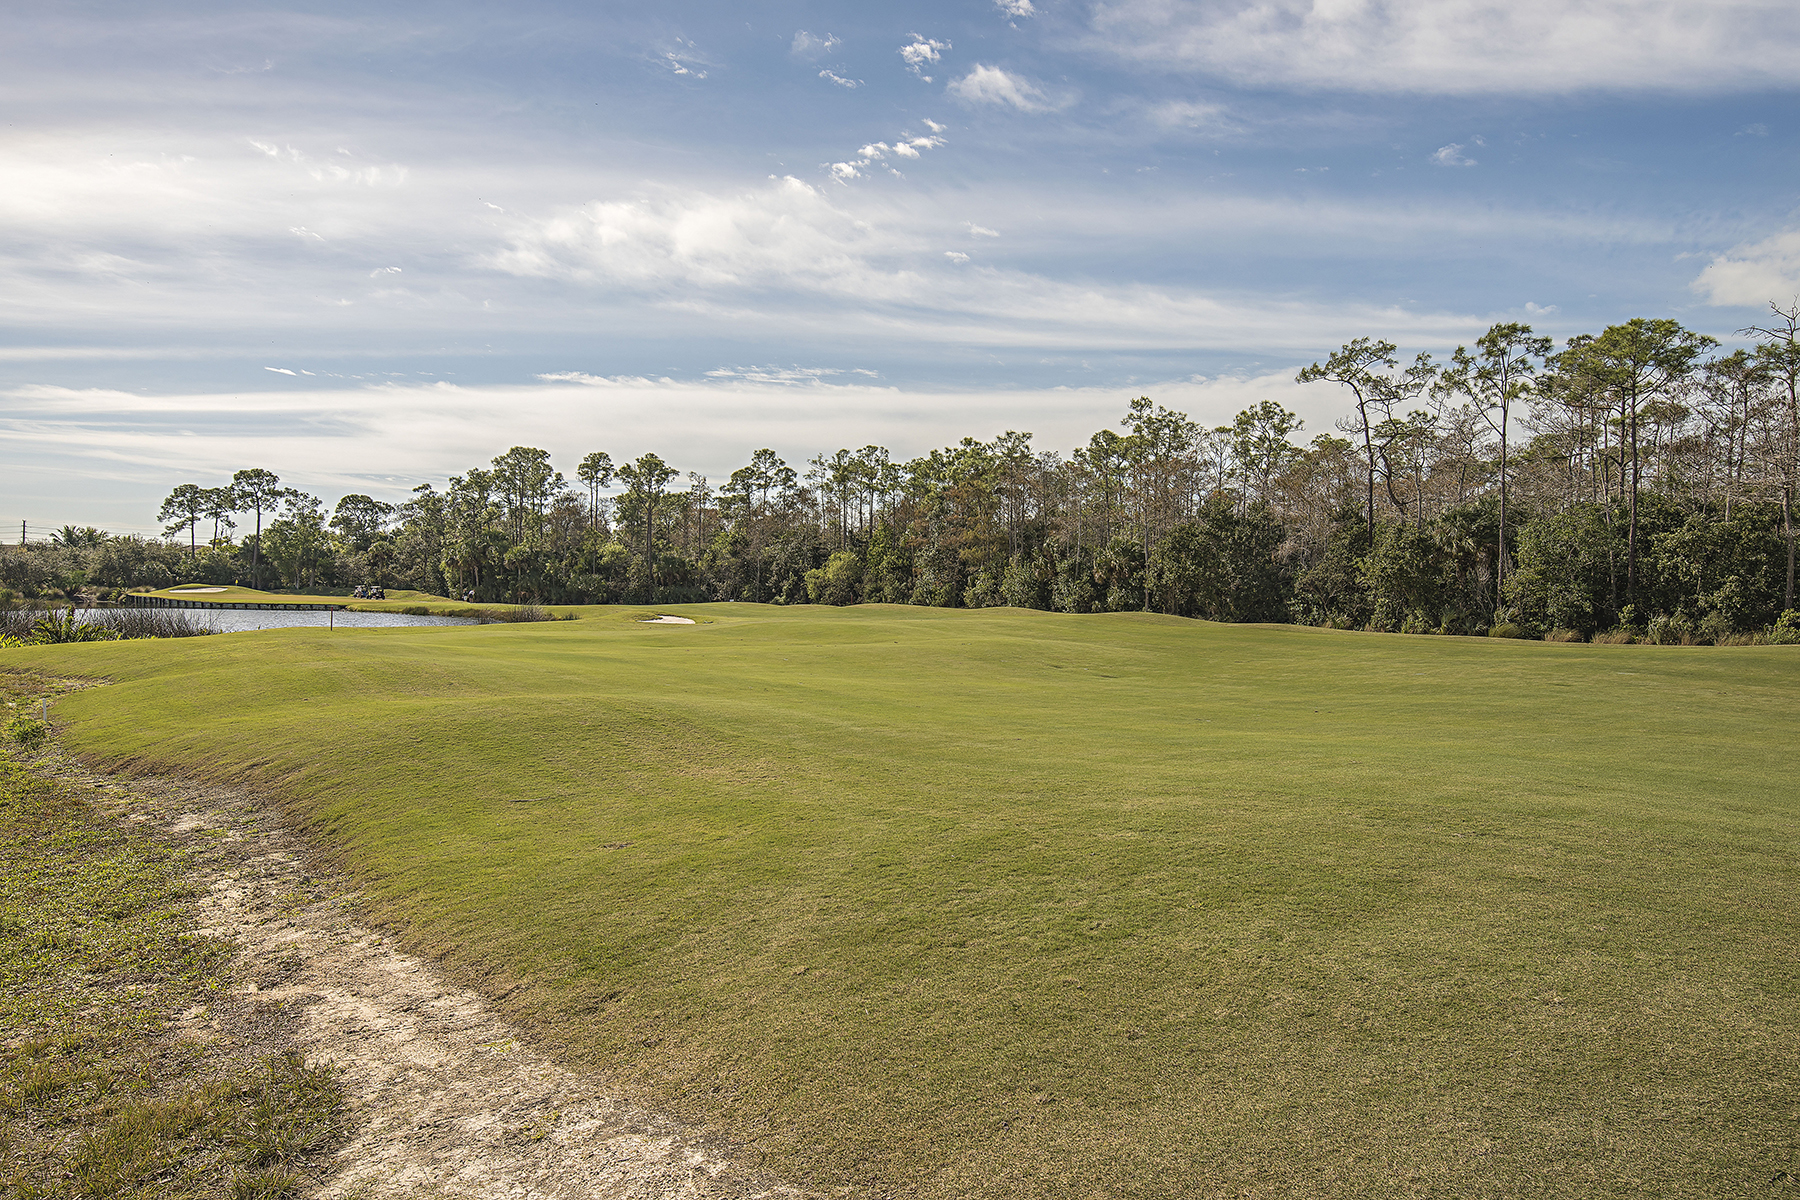 Land for Sale at ESTUARY AT GREY OAKS 1231 Gordon River Trl Naples, Florida, 34105 United States